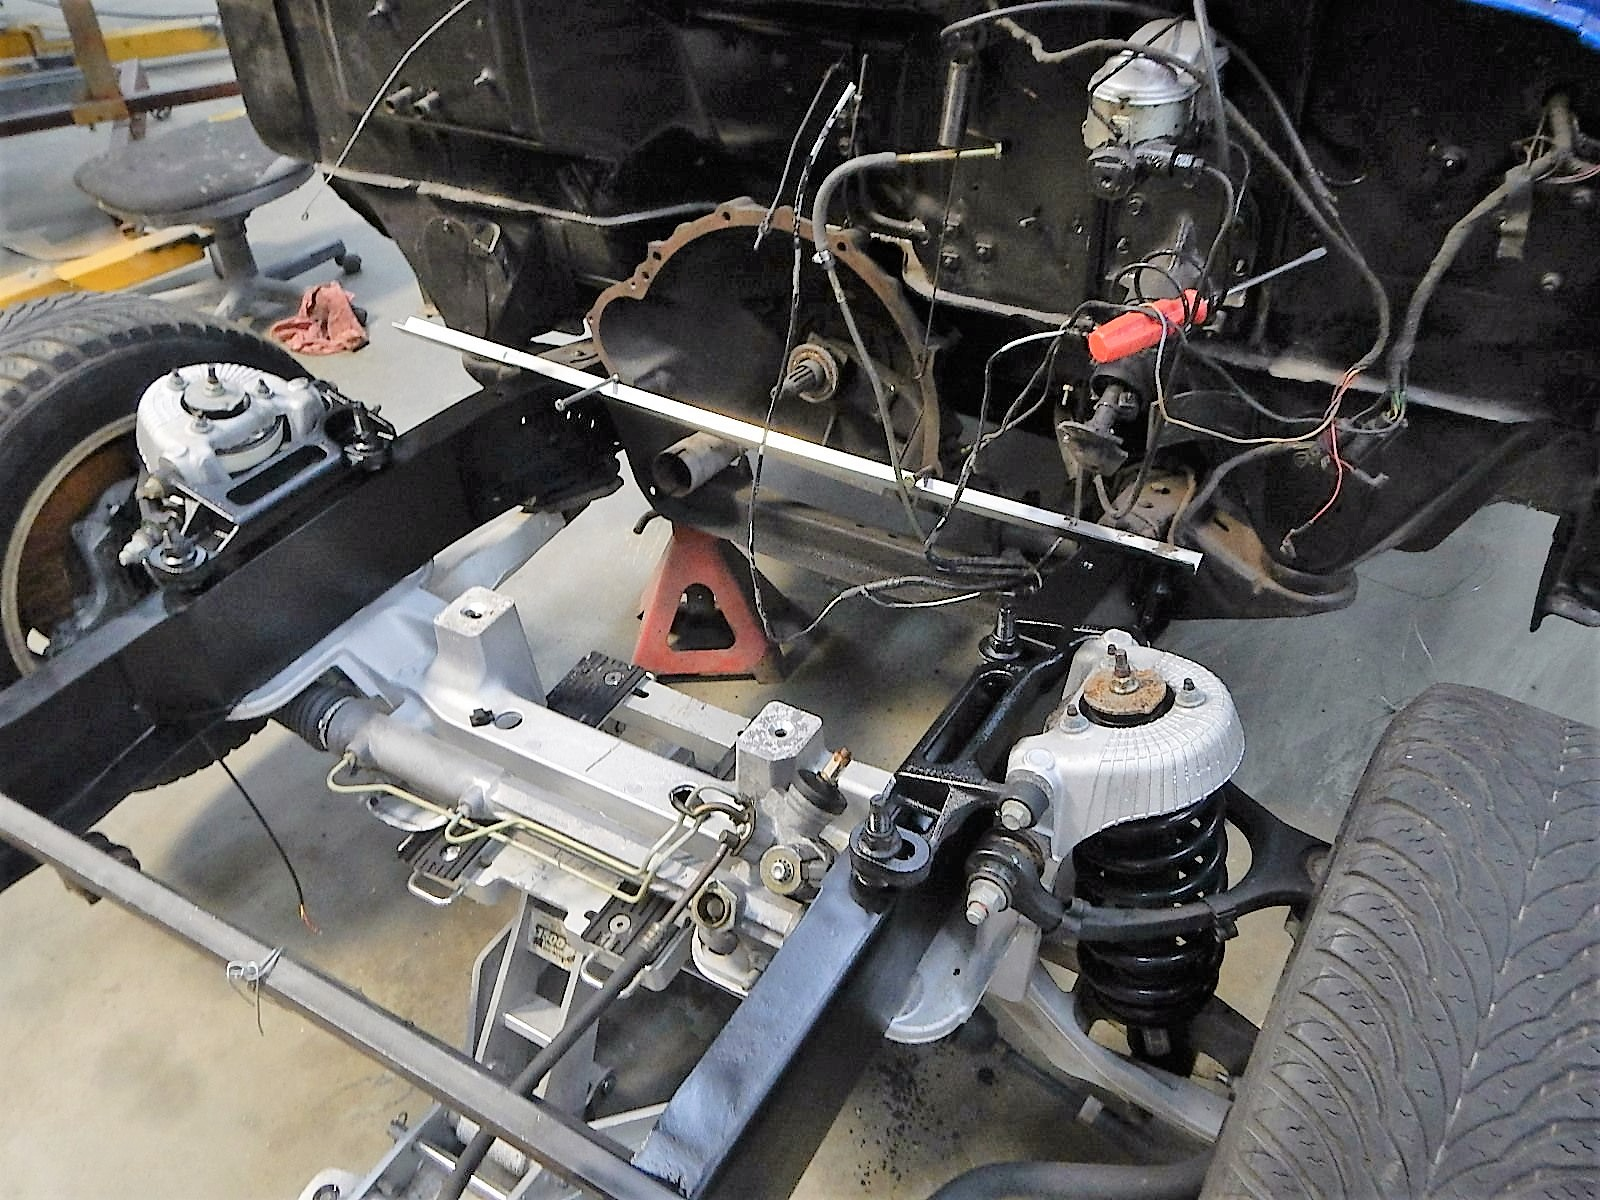 1968 Ford F-100 Front End Swap - Mercury Crown Vic  079.jpg